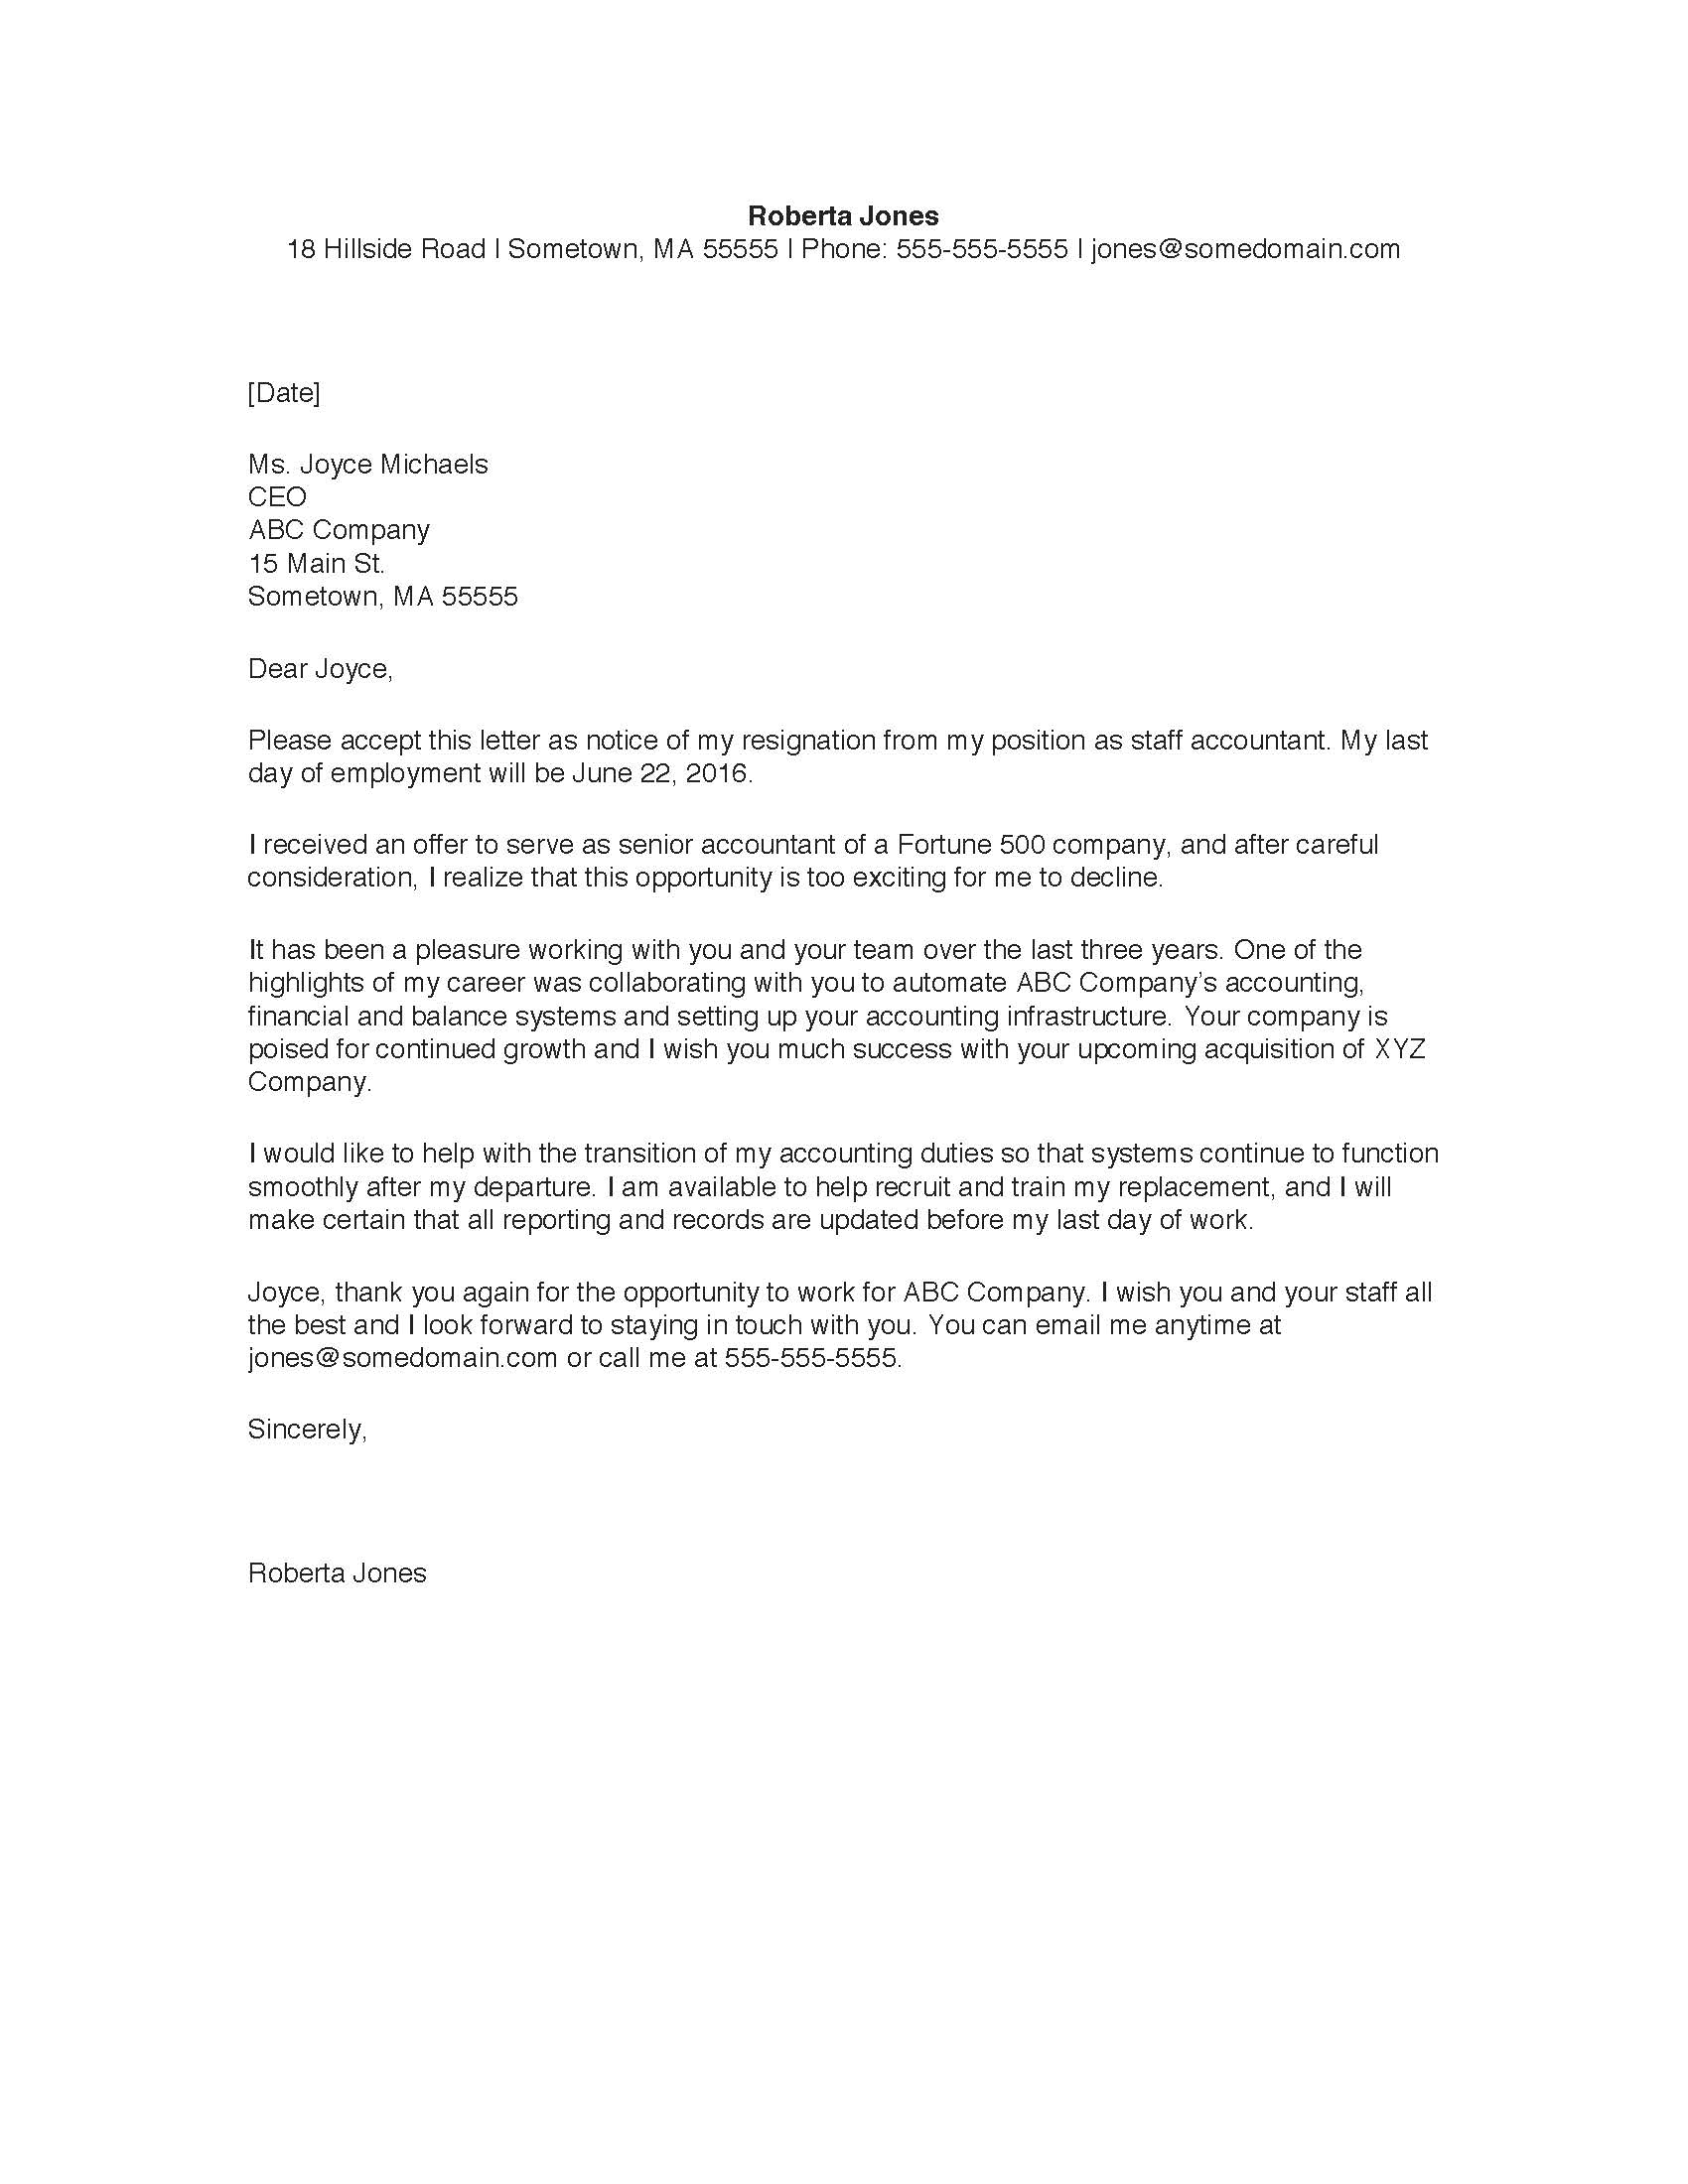 Exceptional Sample Resignation Letter With Example Of A Resignation Letter